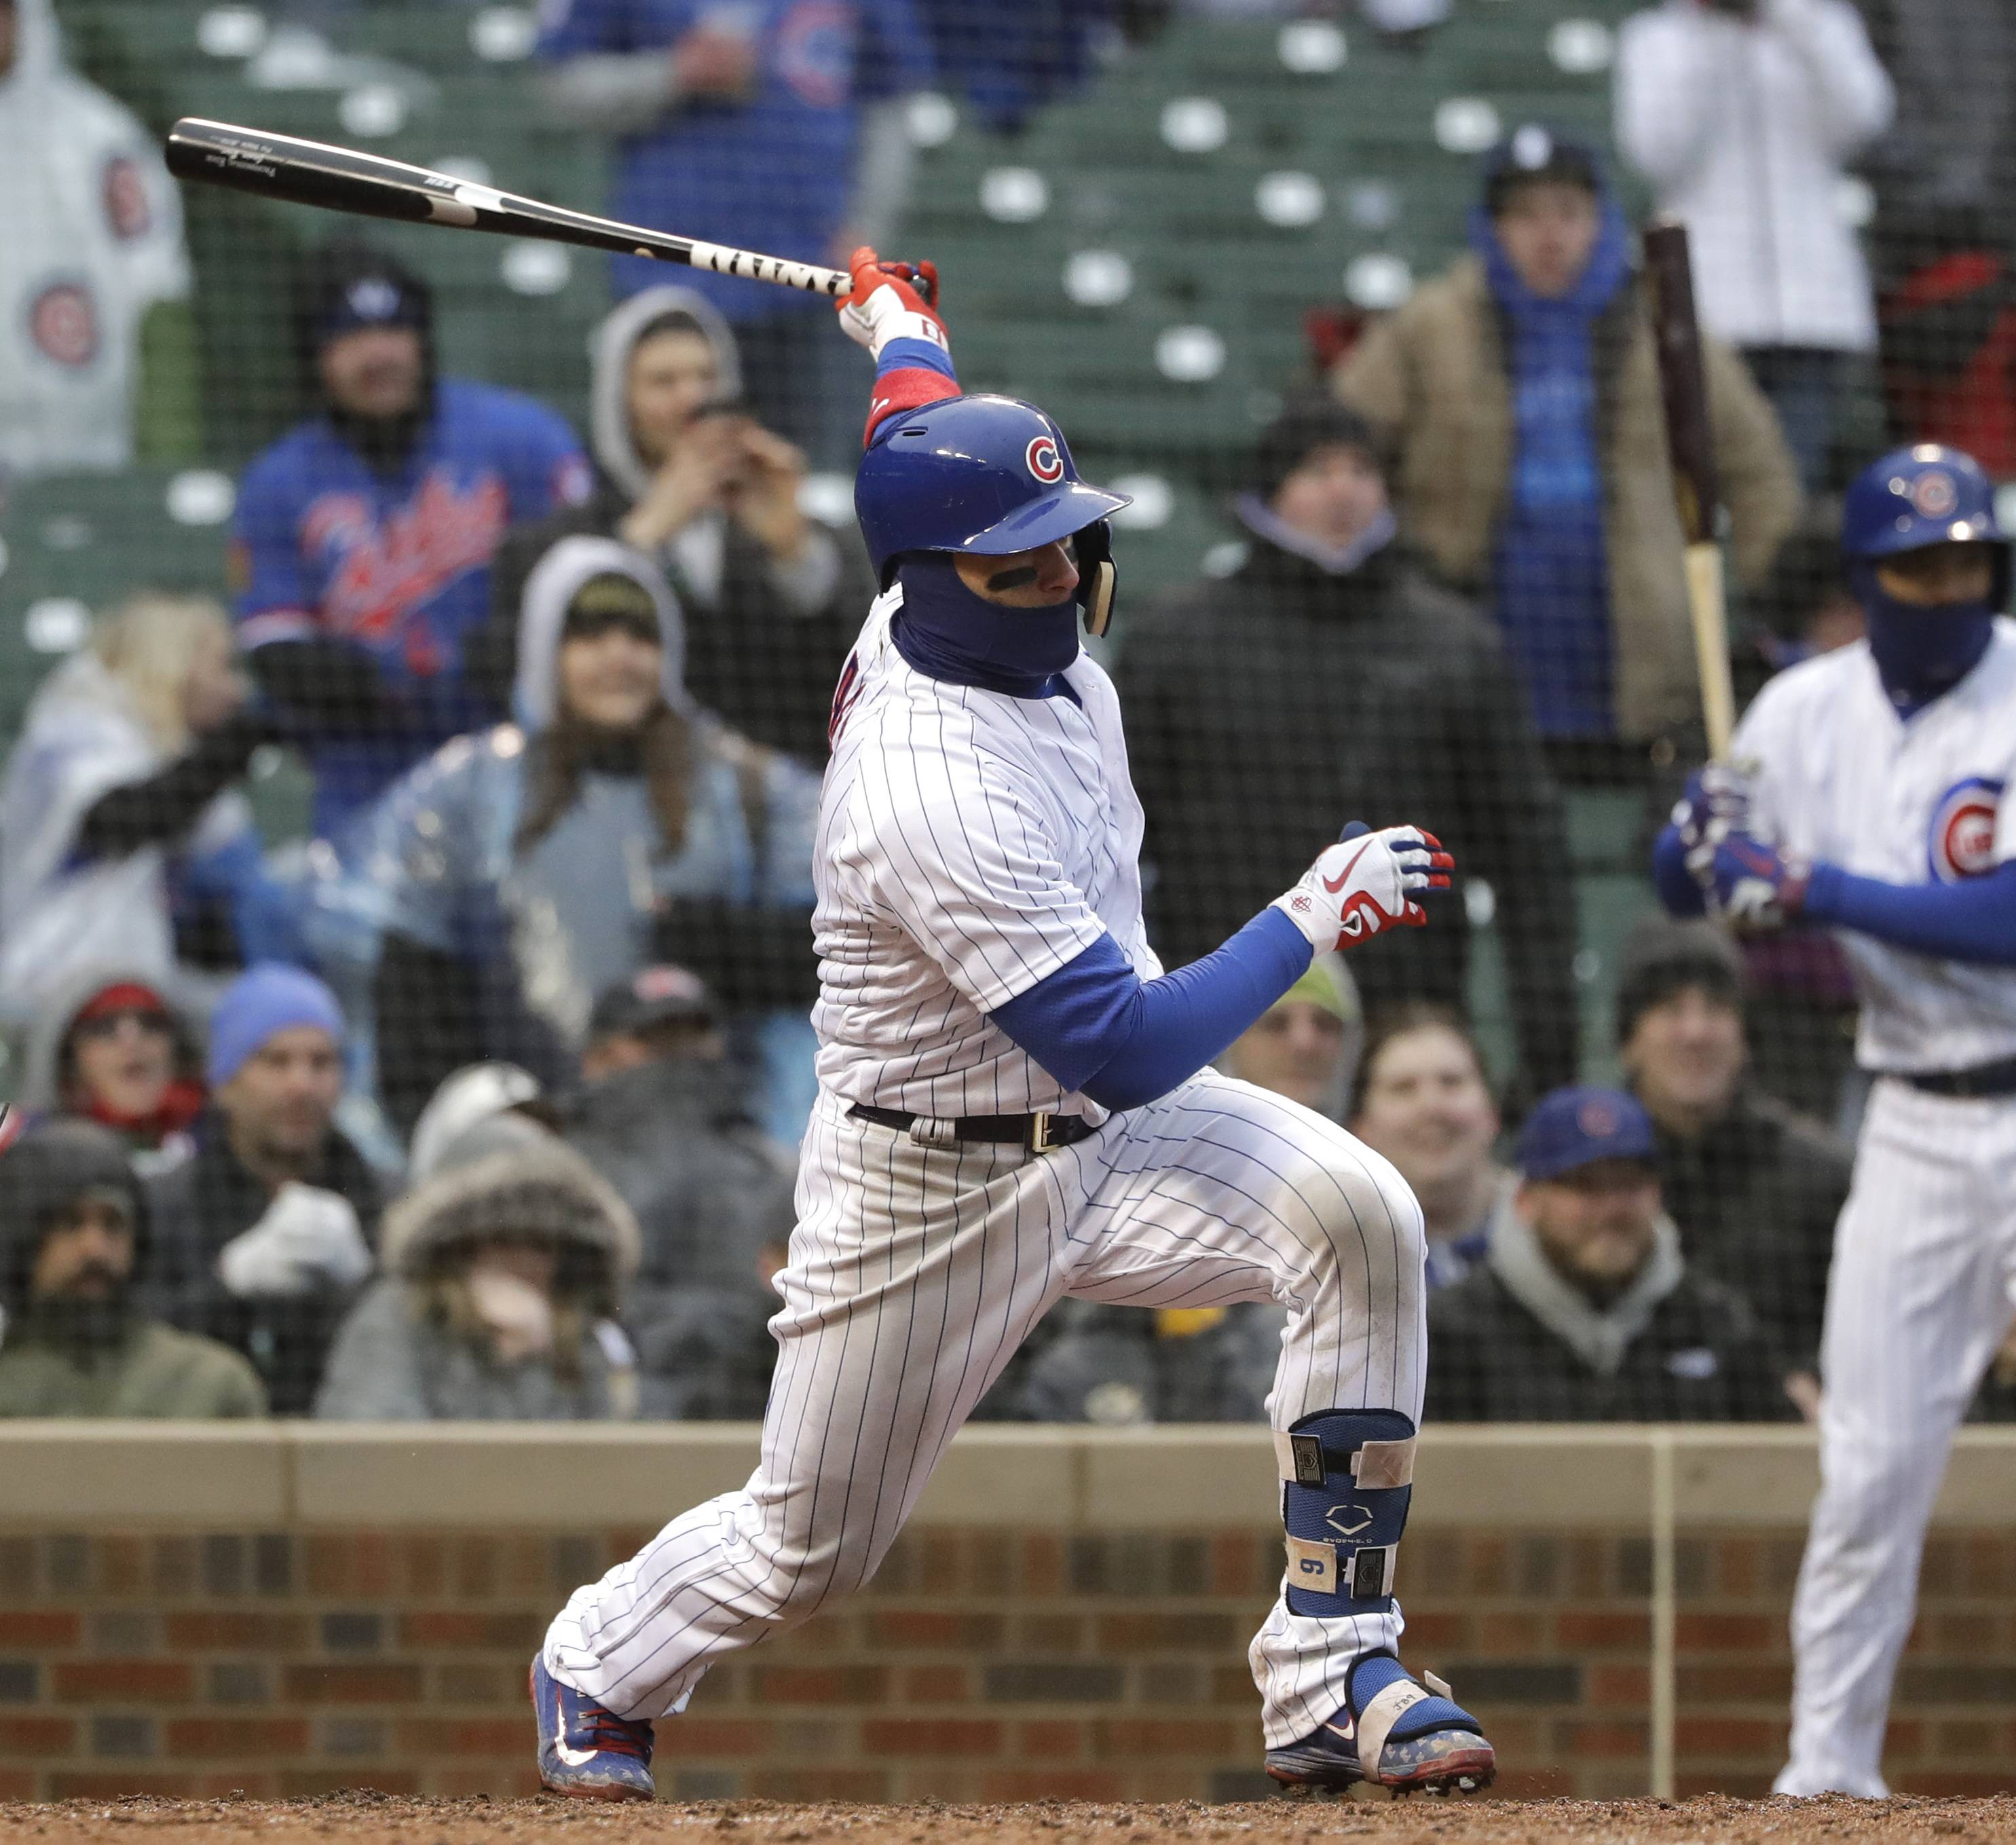 Cubs second baseman Javier Baez watches his 3-run double against the Atlanta Braves in the eighth inning on Saturday at Wrigley Field in Chicago. The Cubs rallied from a 10-2 deficit Saturday, scoring 9 runs in the eighth inning to beat the Atlanta Braves 14-10 at Wrigley Field.